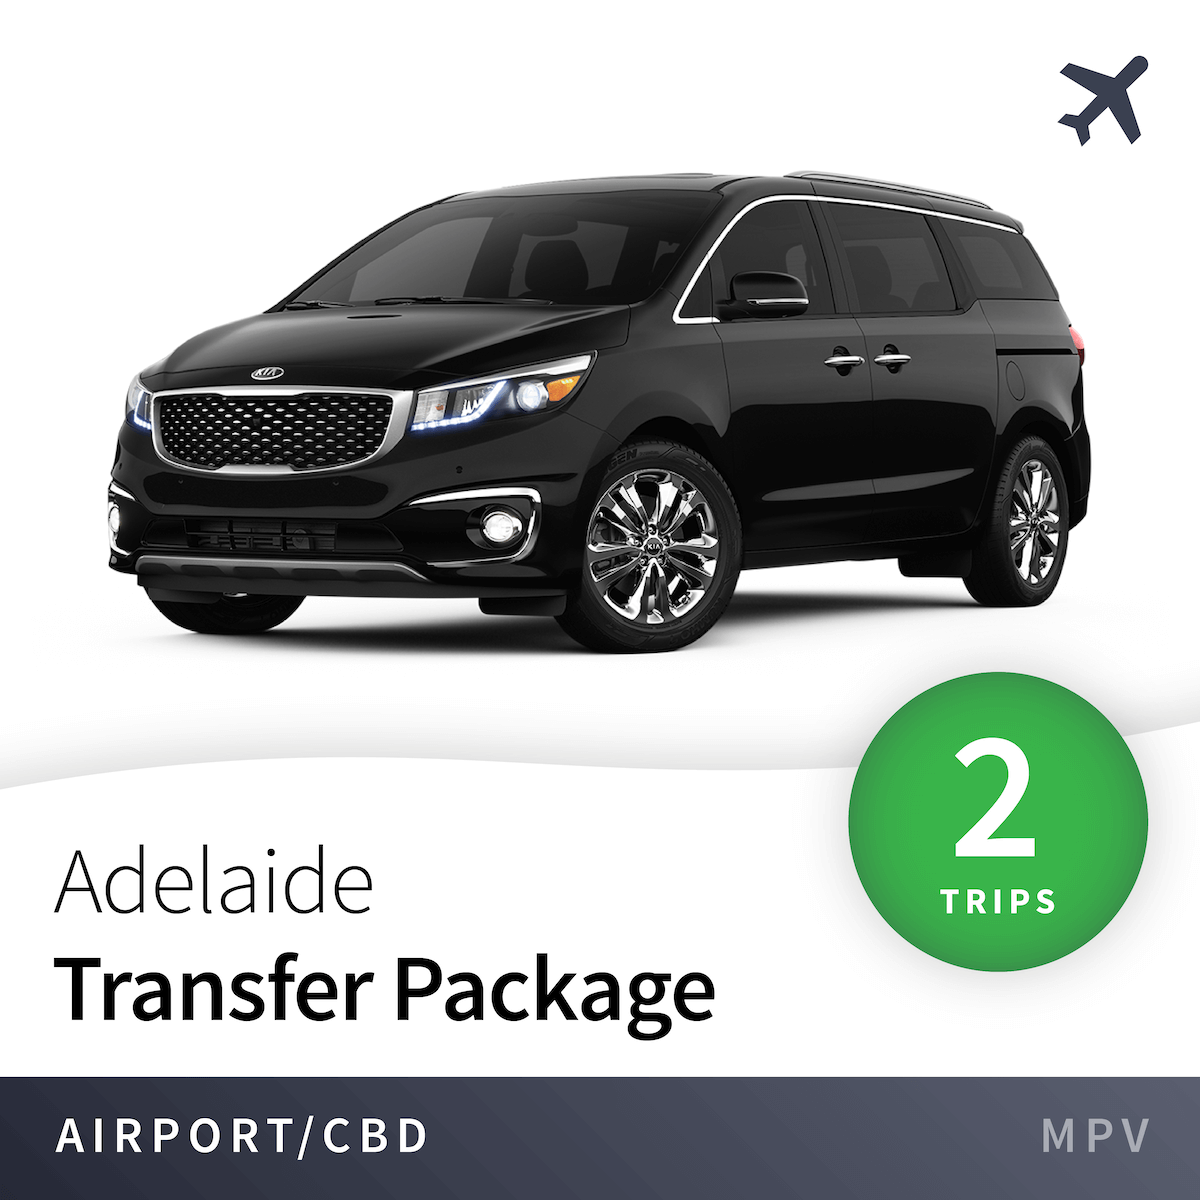 Adelaide Airport Transfer Package - MPV (2 Trips) 4